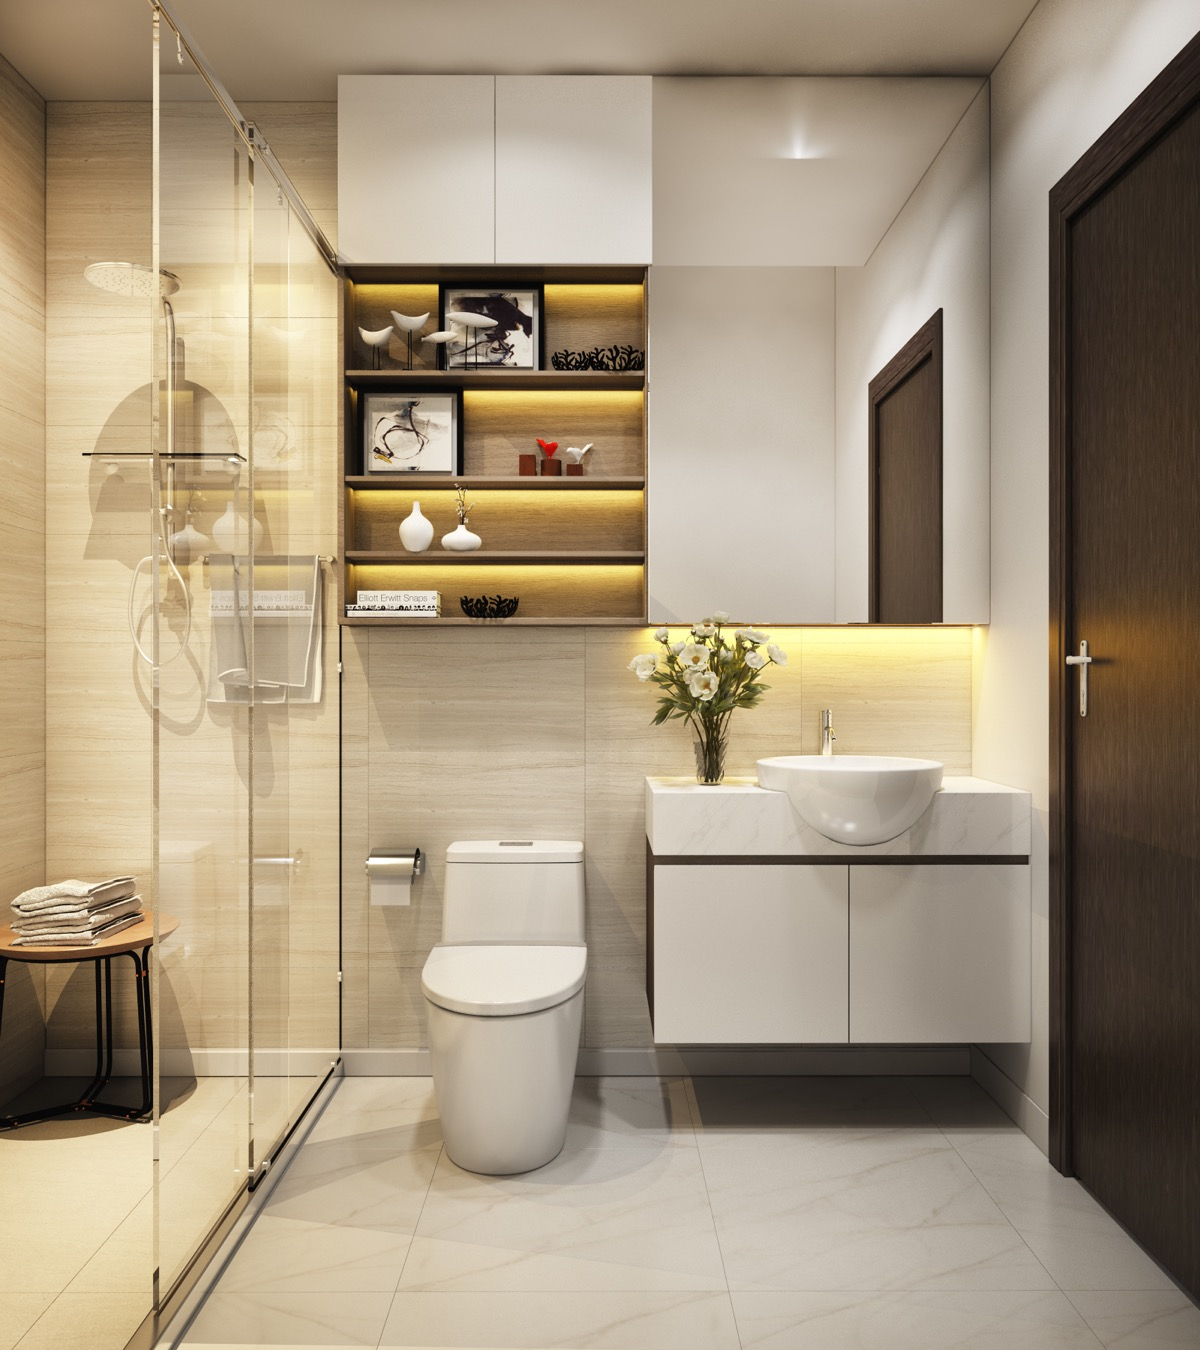 Modern bathrooms create a simplistic and clean feeling. In order to design your modern bathroom make sure to utilize geometric shapes and patterns, clean lines, minimal colors and mid-century furniture. Your bathroom can effortlessly become a modern sanctuary for cleanliness and comfort.